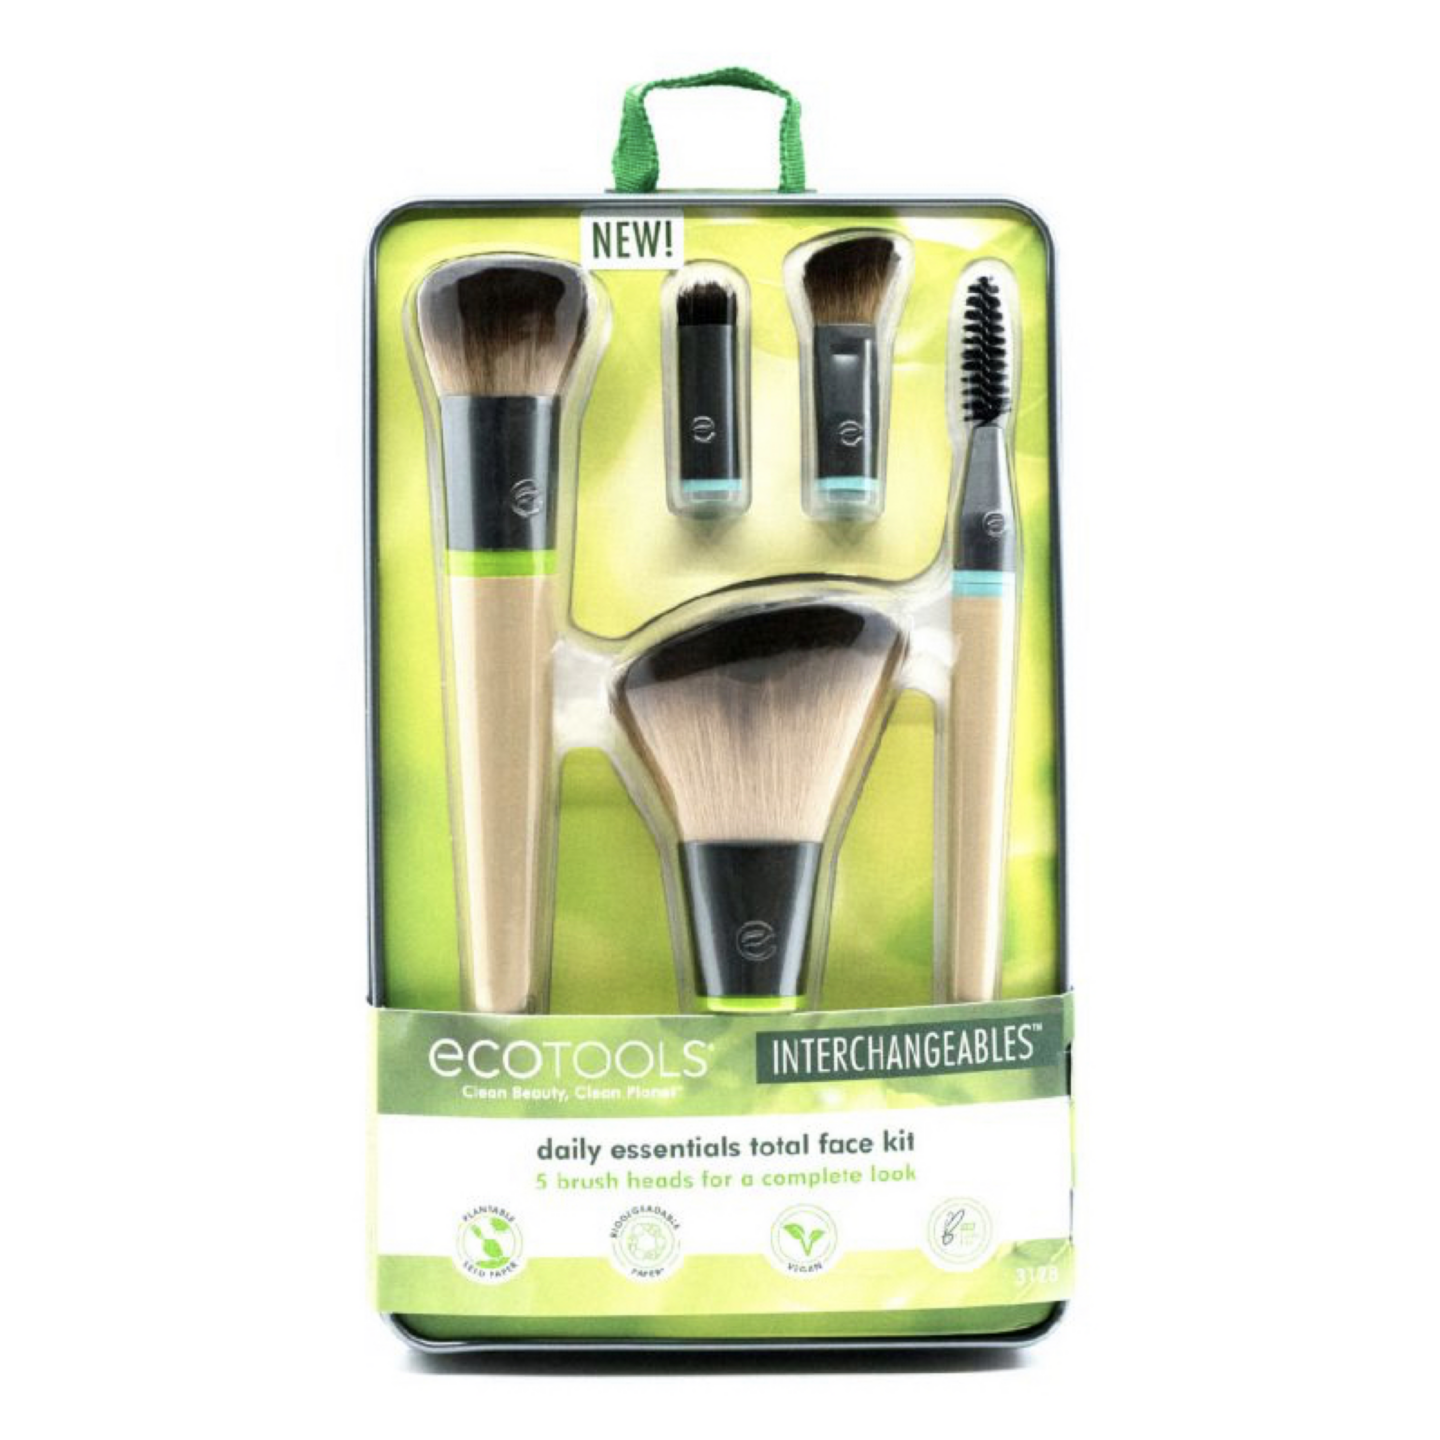 EcoTools Daily Essentials Total Face Kit